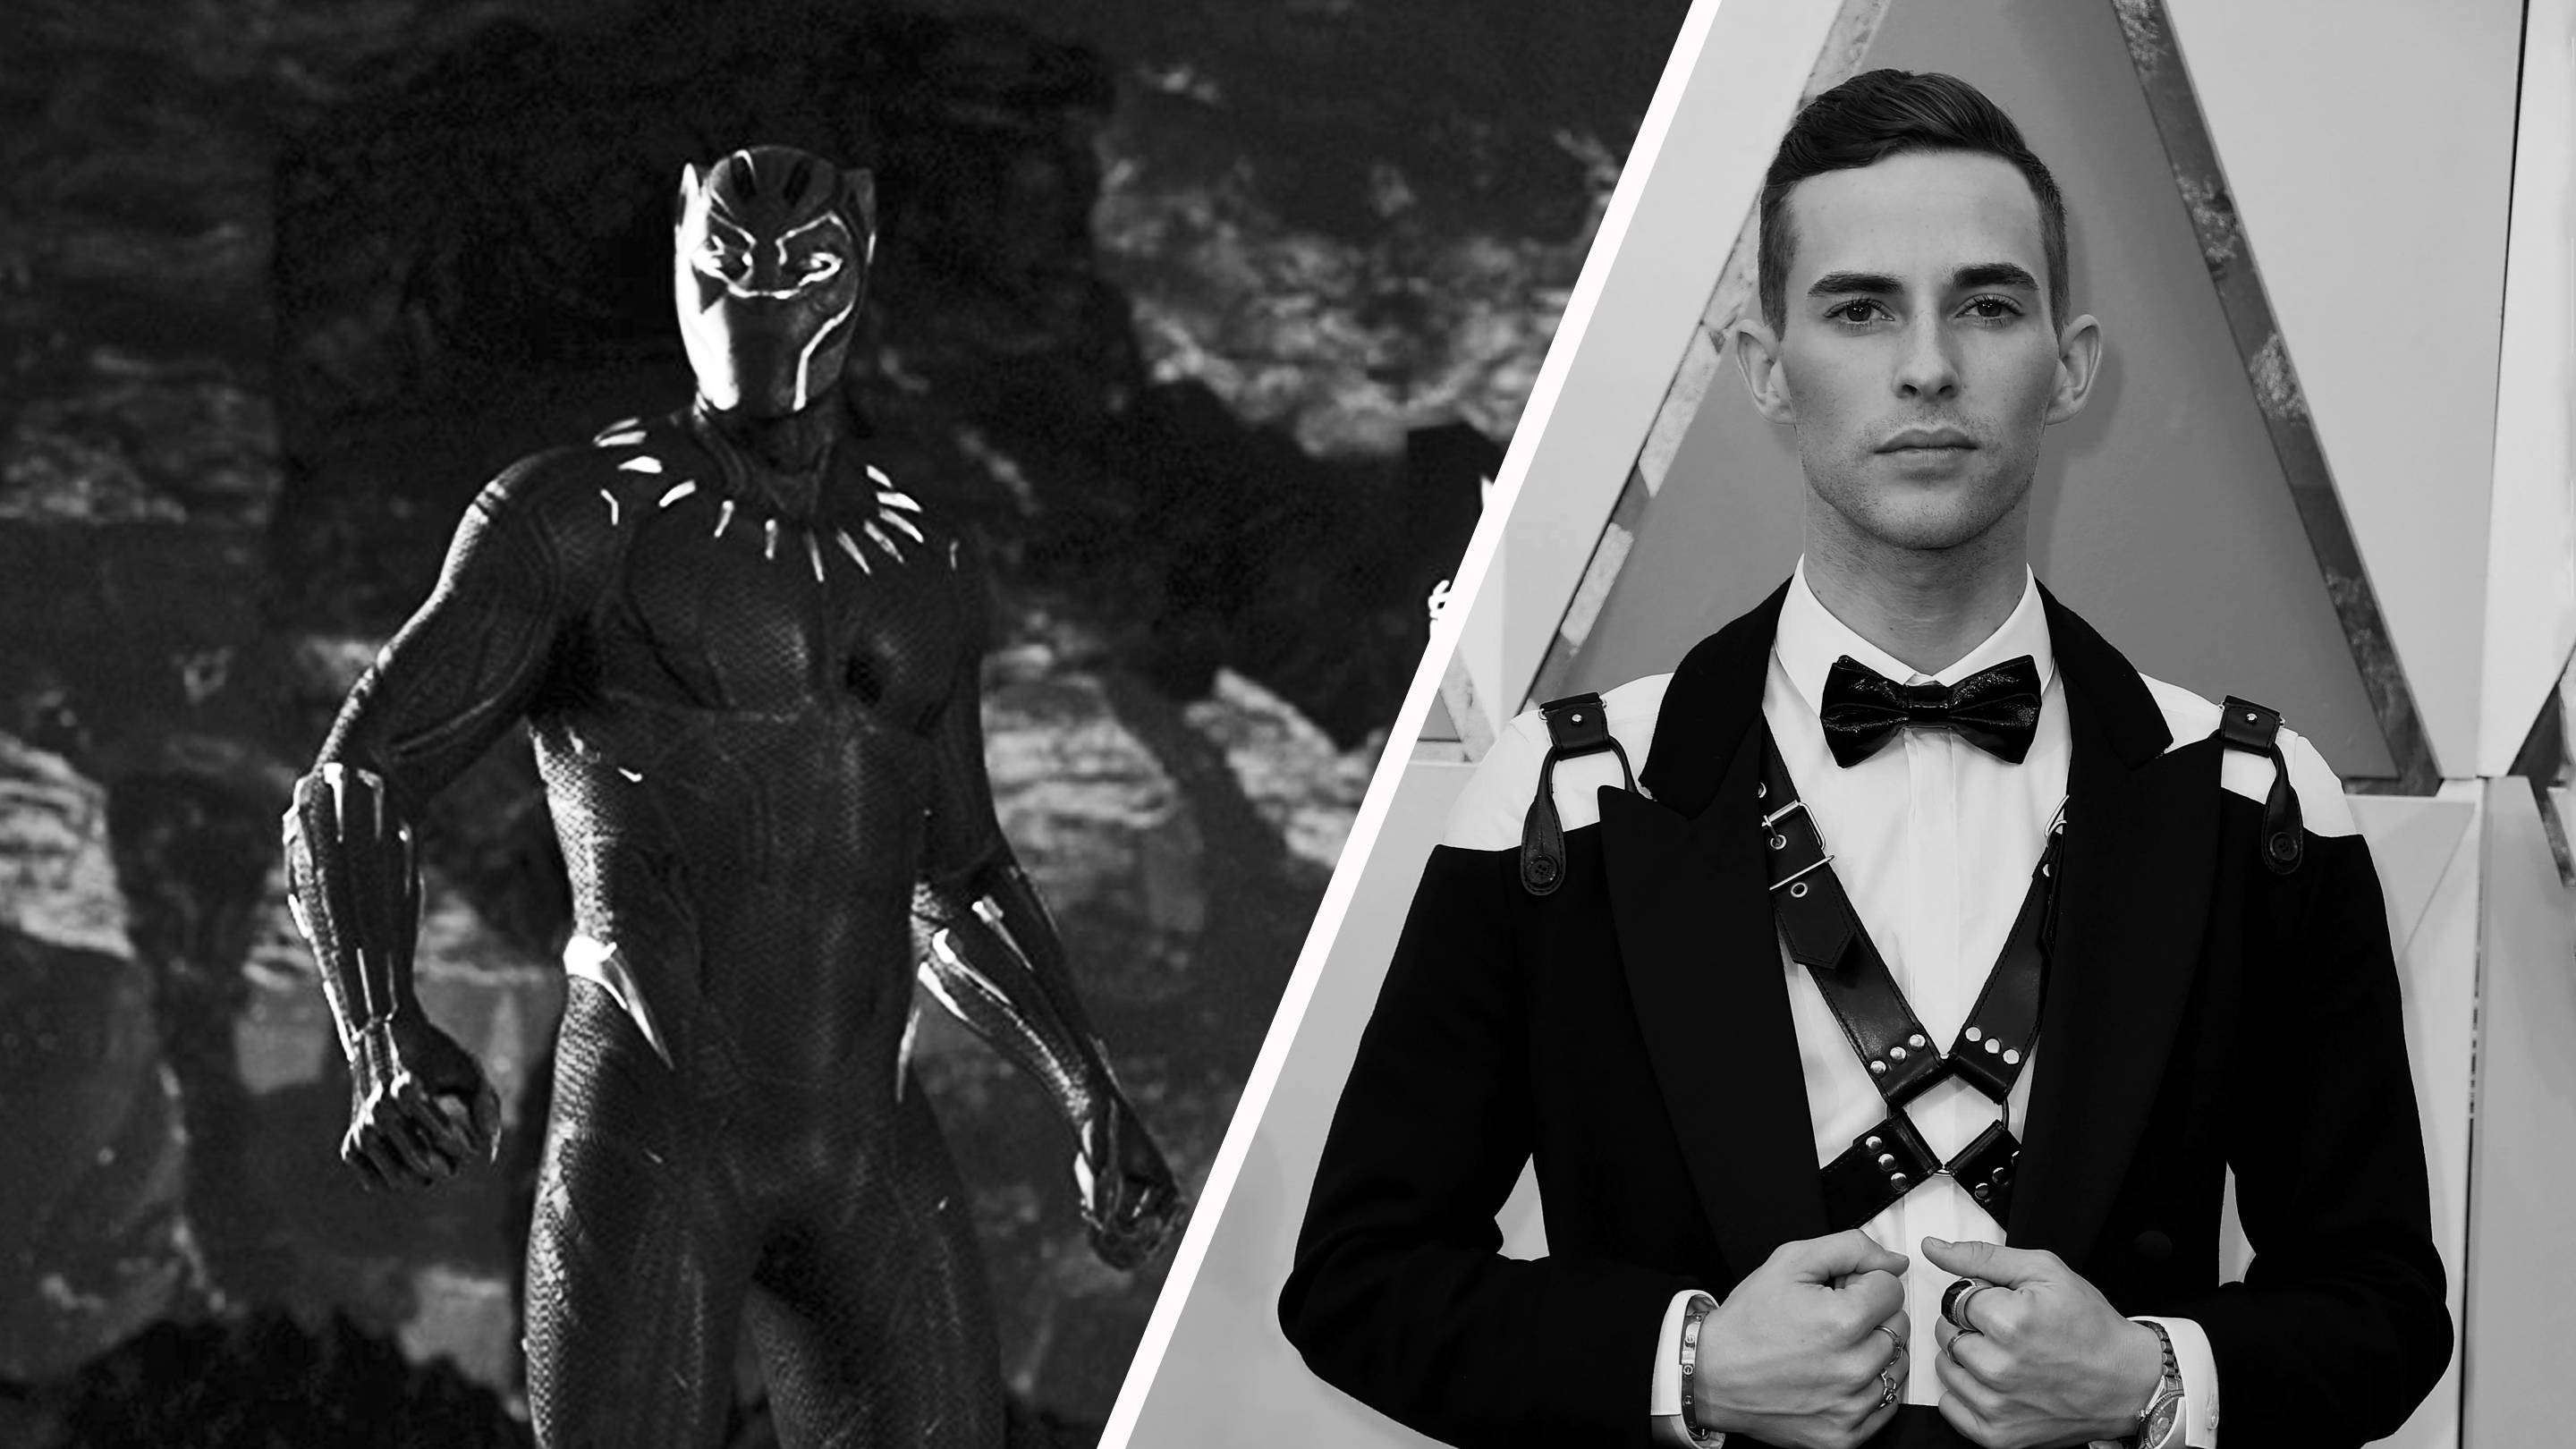 Black Panther and Olympics hero Adam Rippon